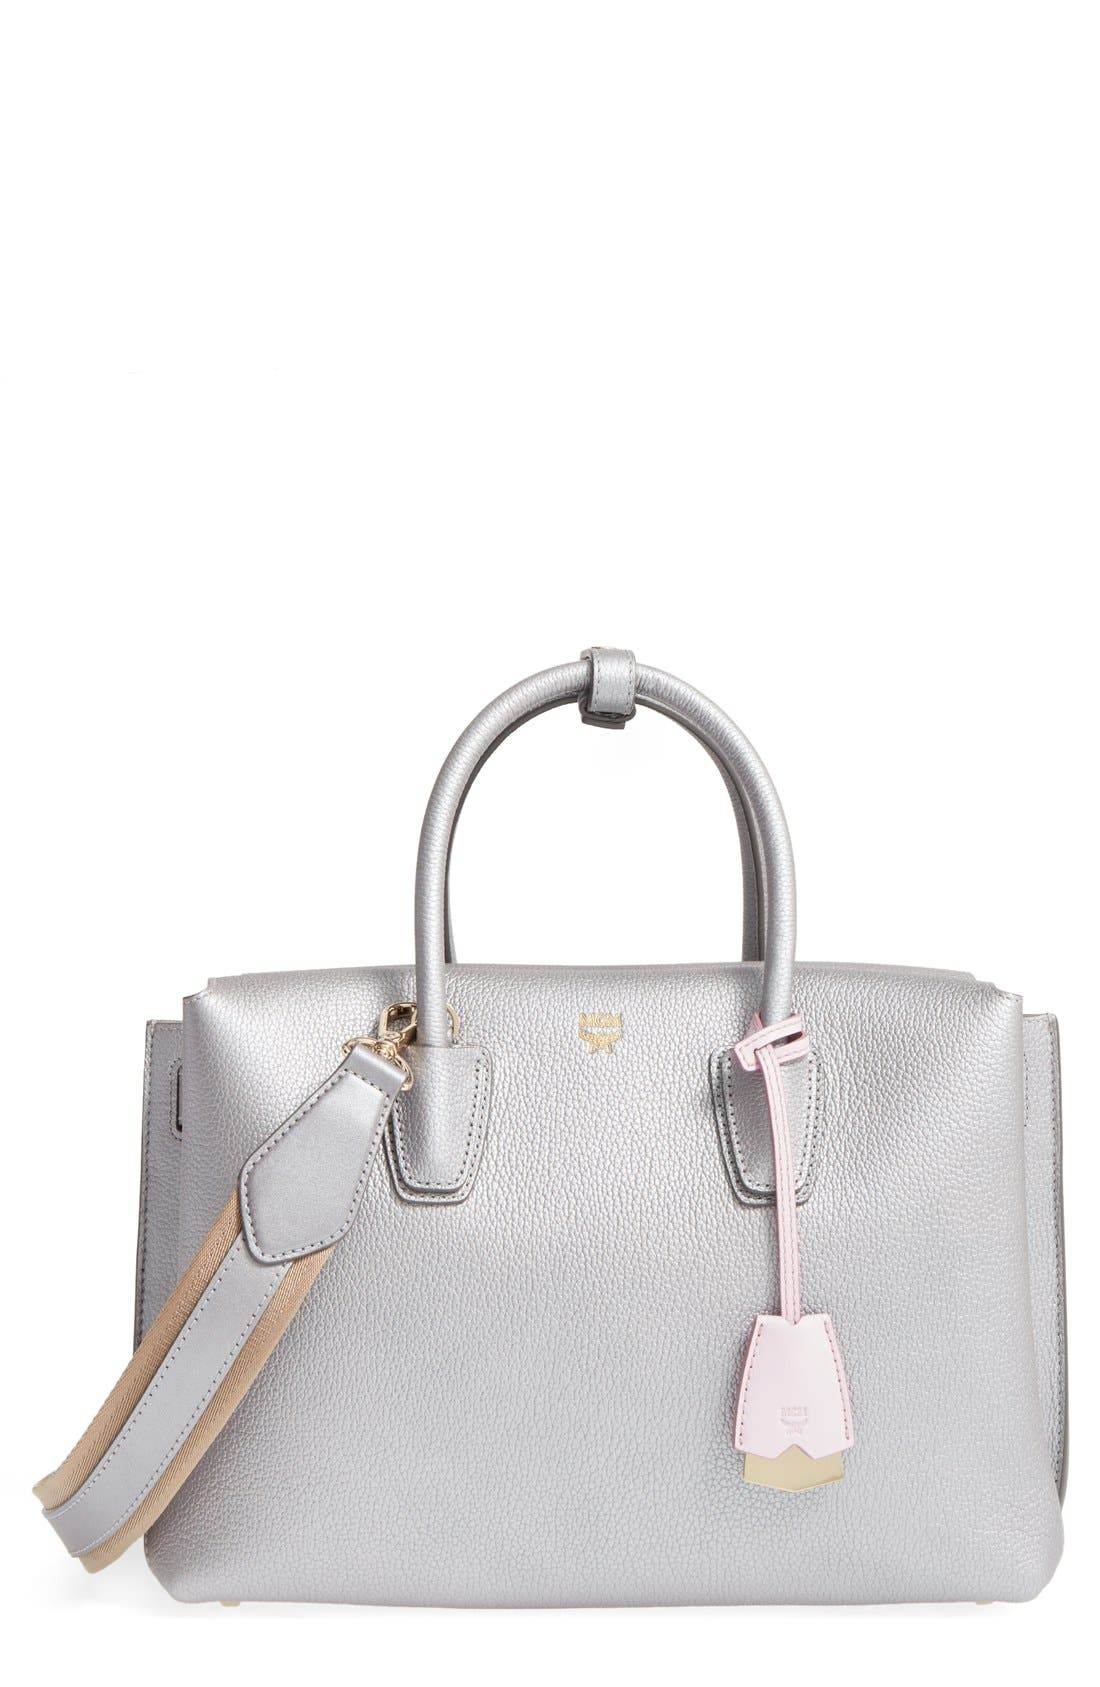 Main Image - MCM Medium Milla Leather Tote